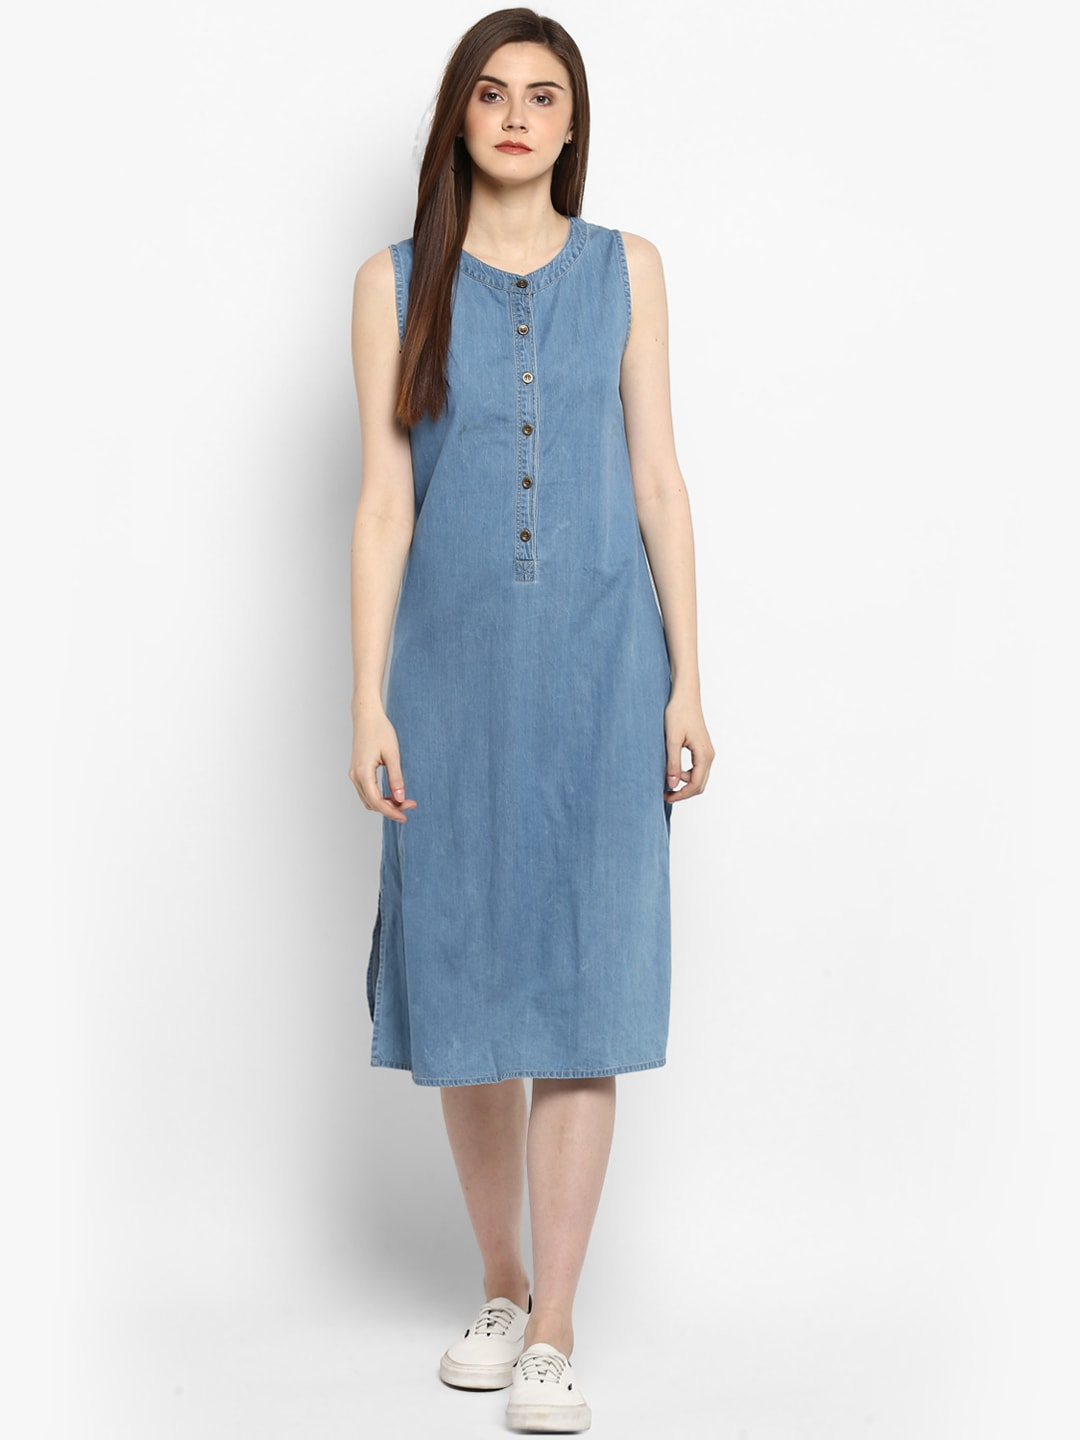 5084b115e0 Blue Denim Dresses - Buy Blue Denim Dresses online in India